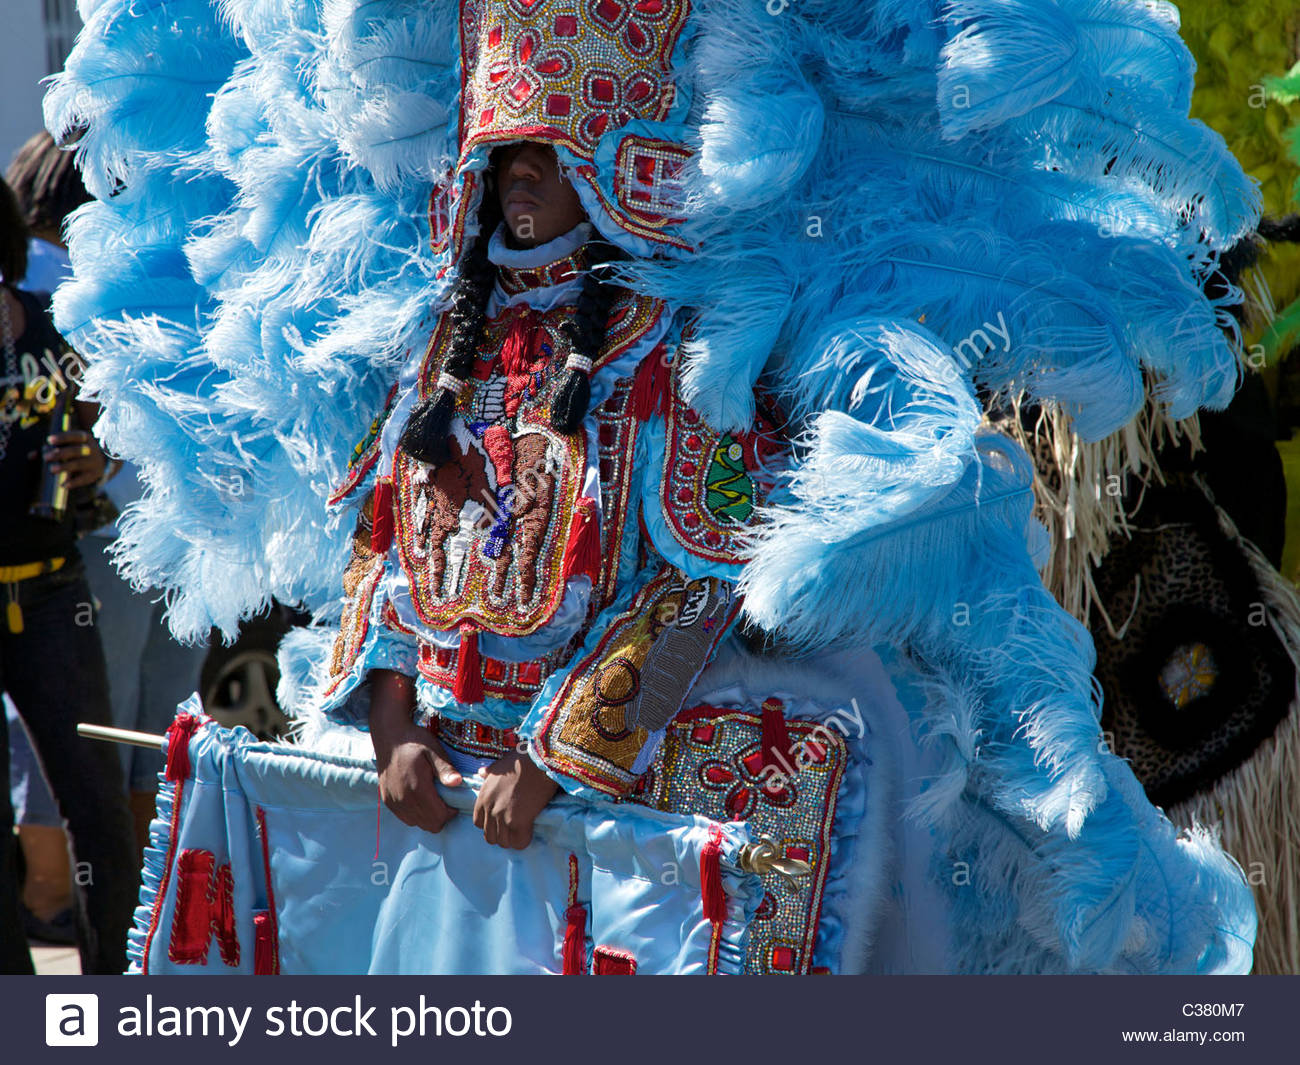 A Mardi Gras Indian wearing traditional hand-made costume sewn from feathers and beads. New Orleans, Louisiana. - Stock Image